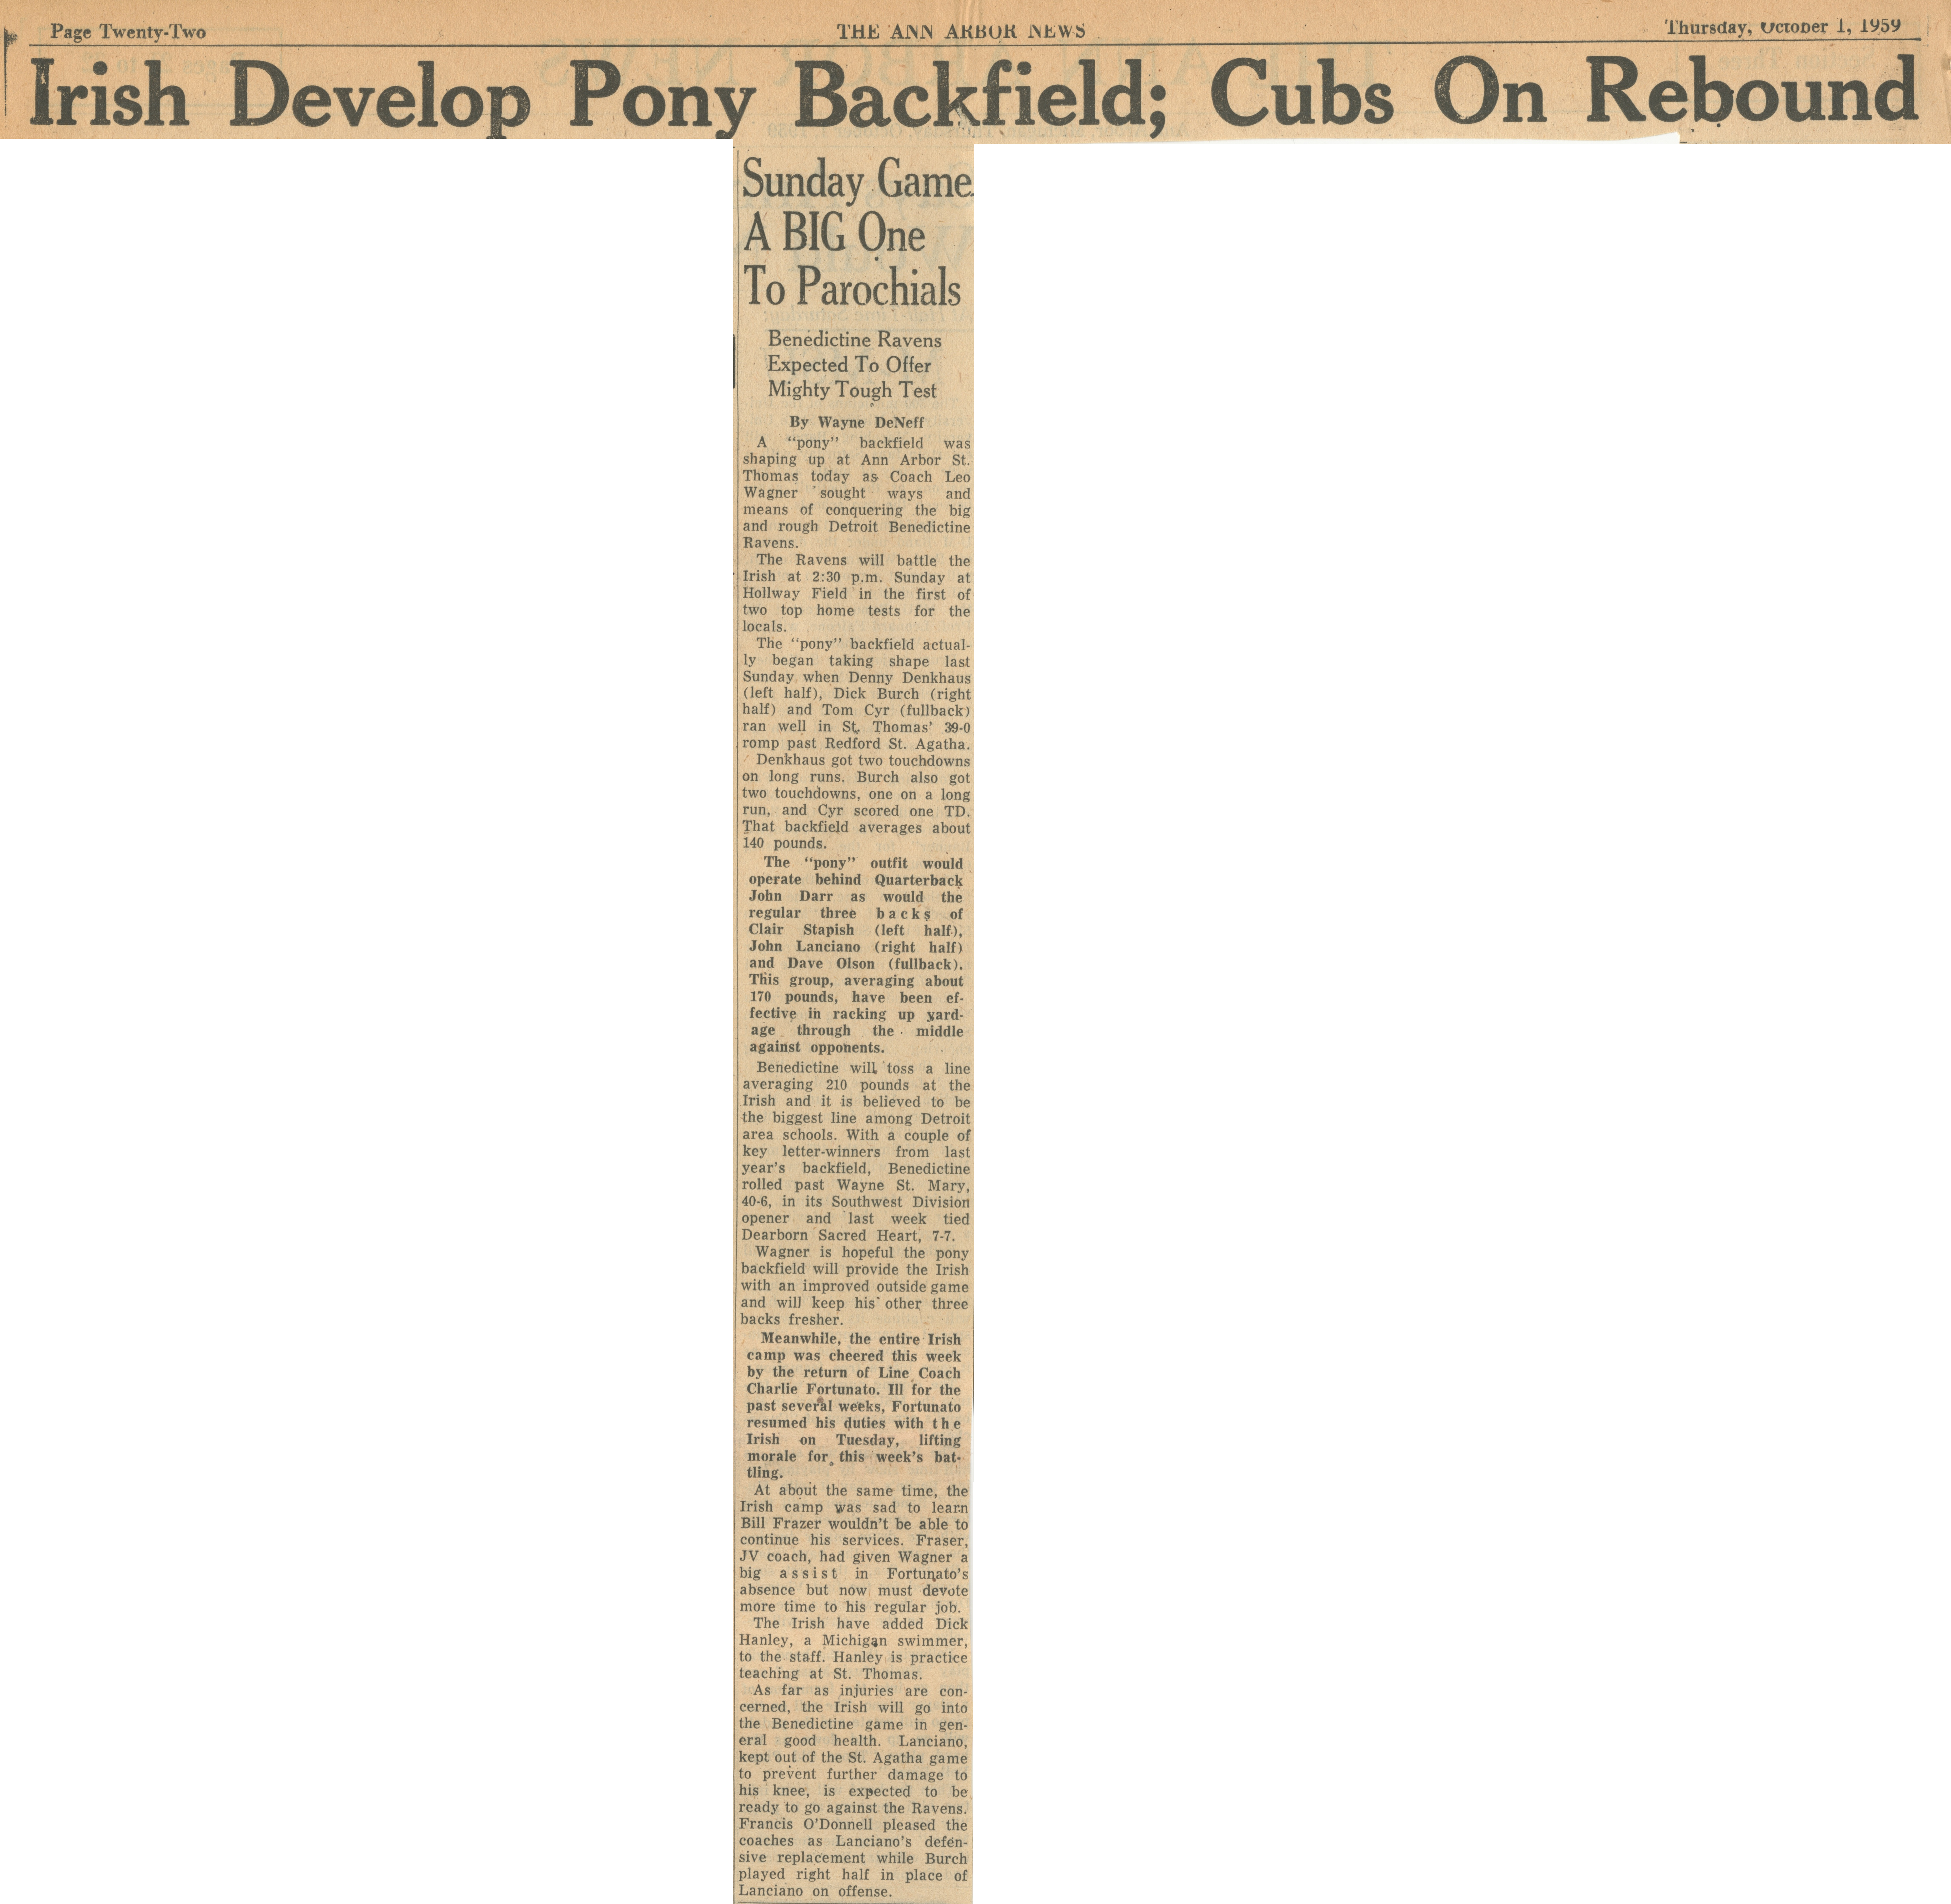 Irish Develop Pony Backfield; Cubs on Rebound image